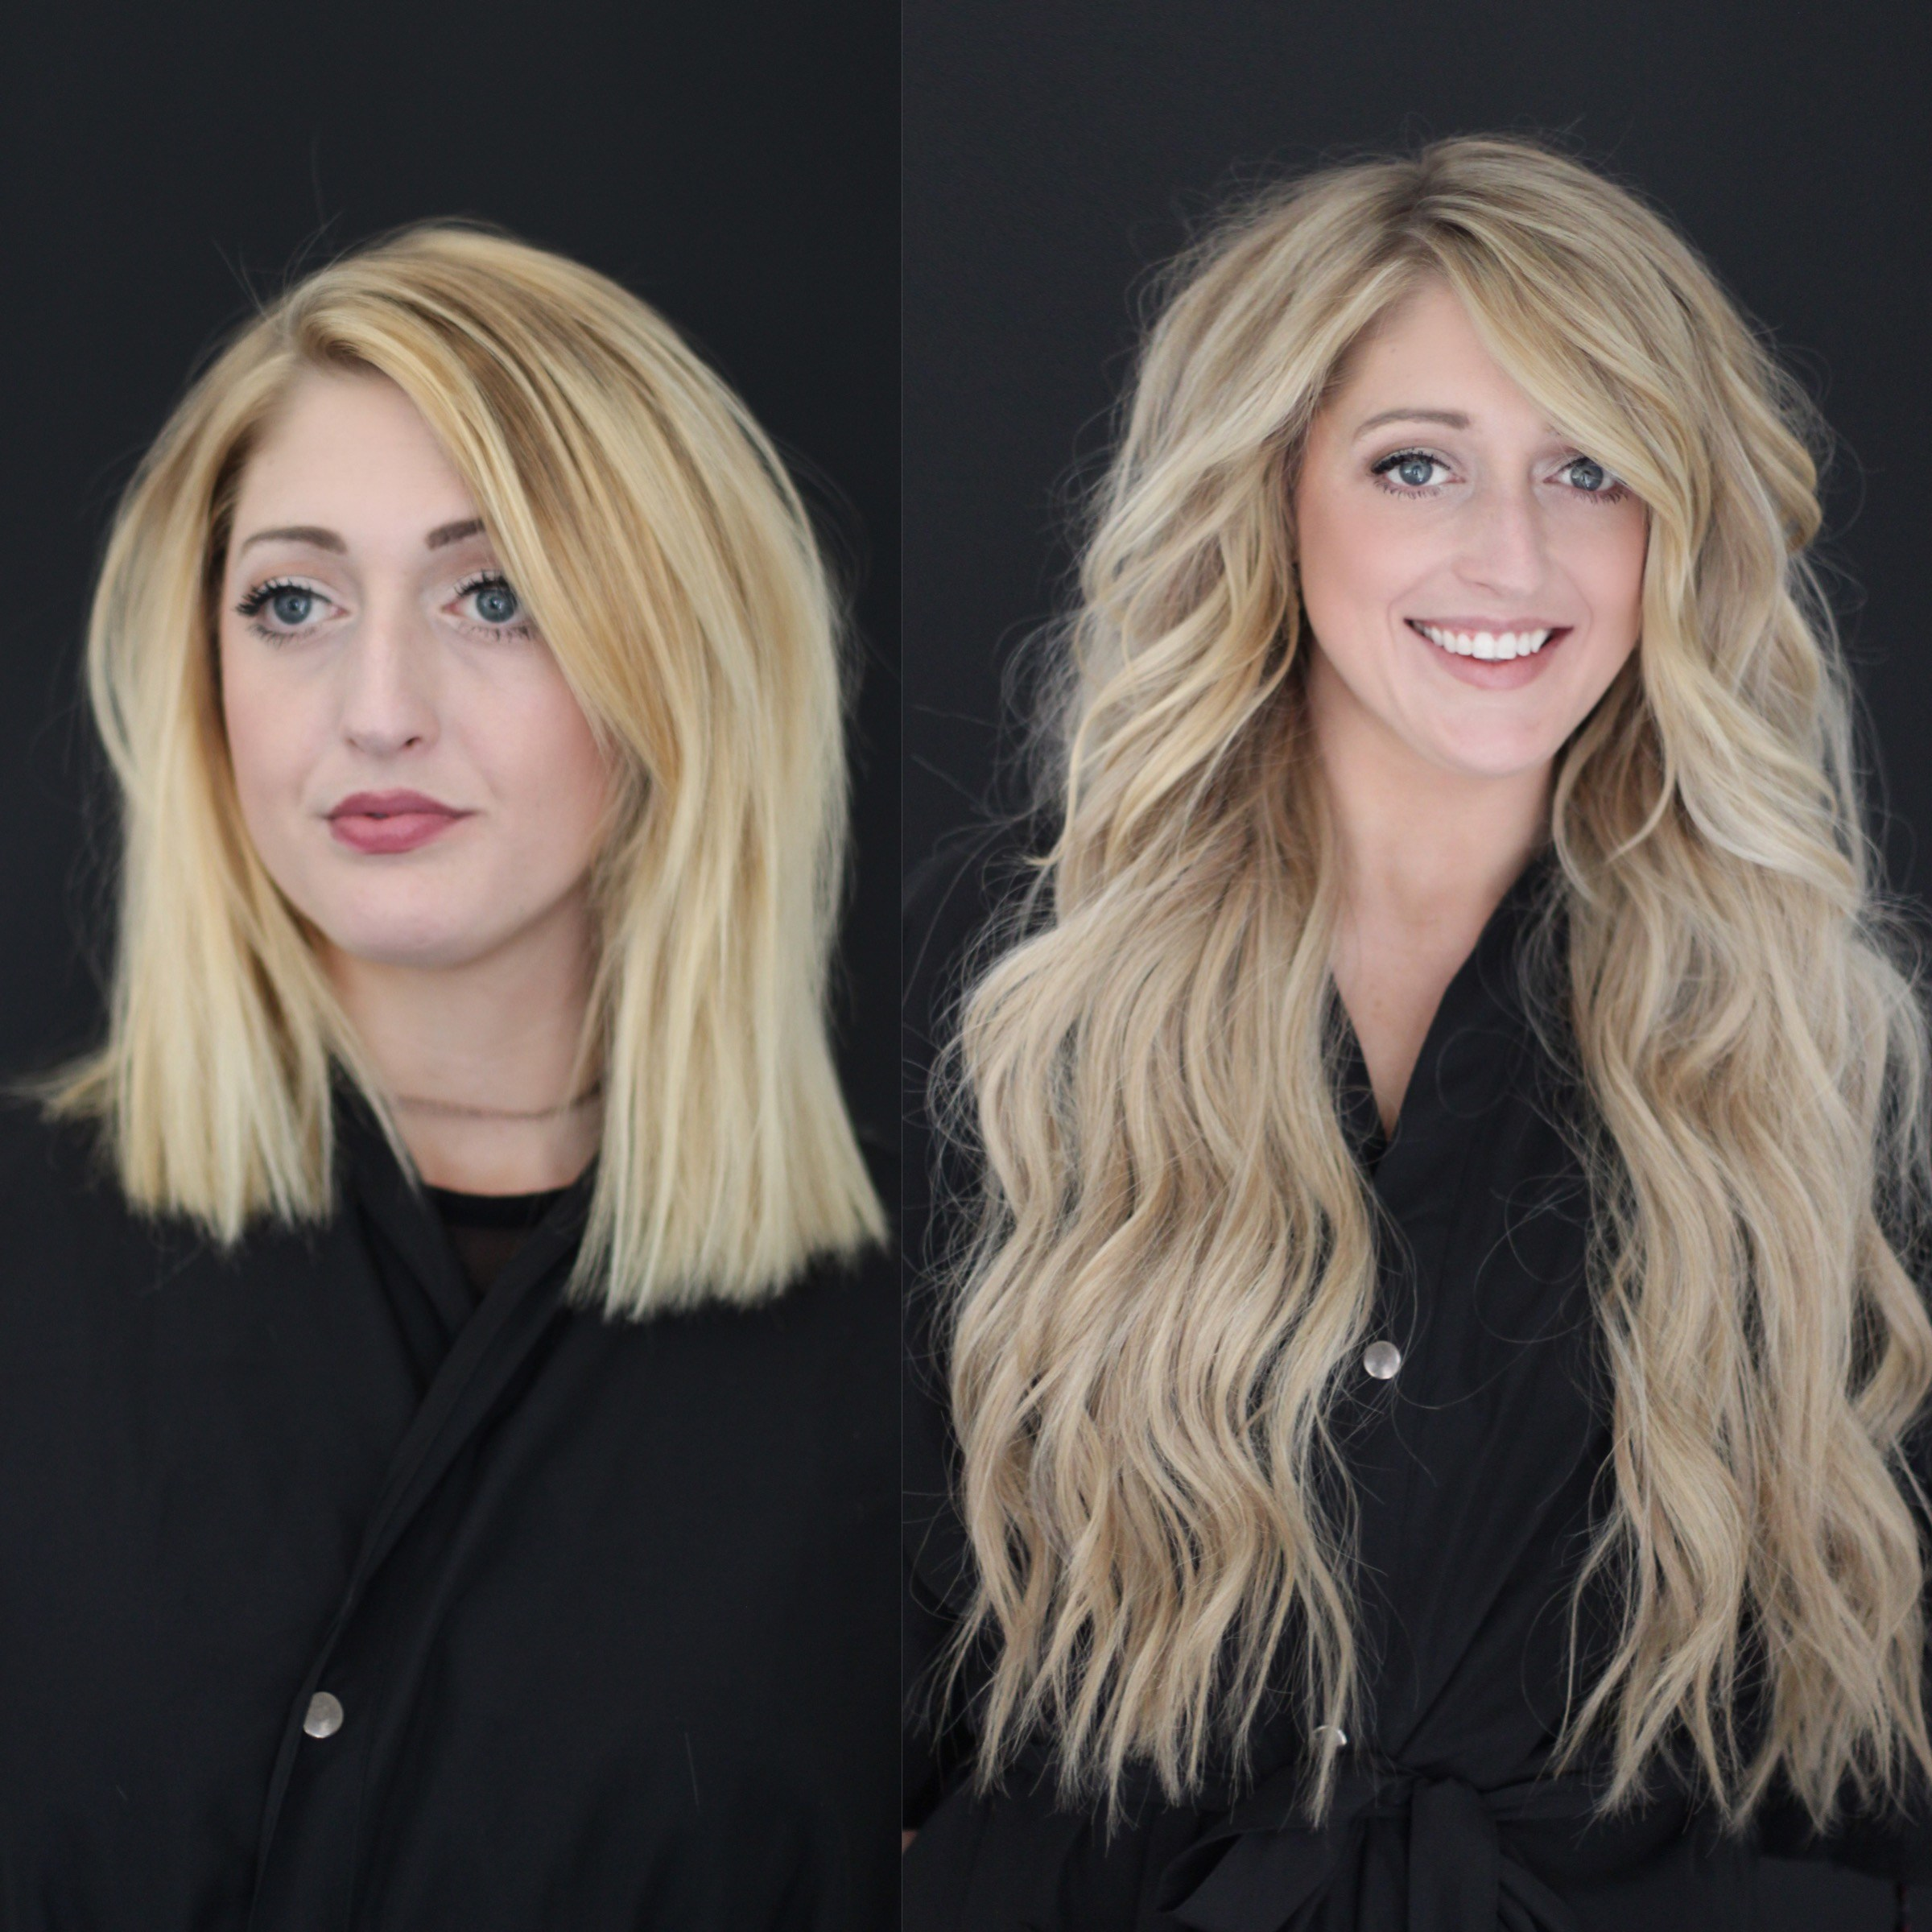 NBR by DKW Styling - Natural Beaded Rows - All the Blonde Envy